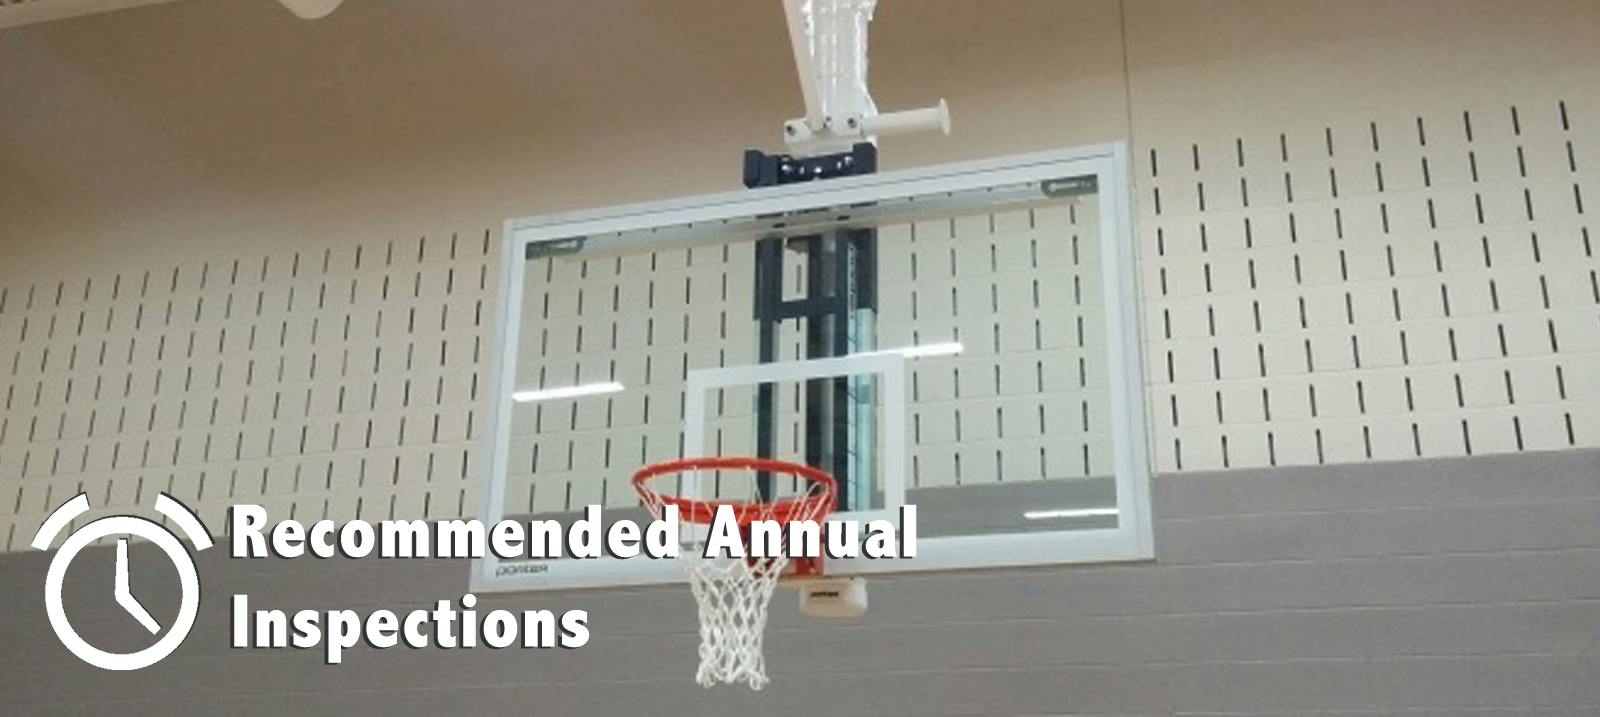 Gym Equipment Inspections